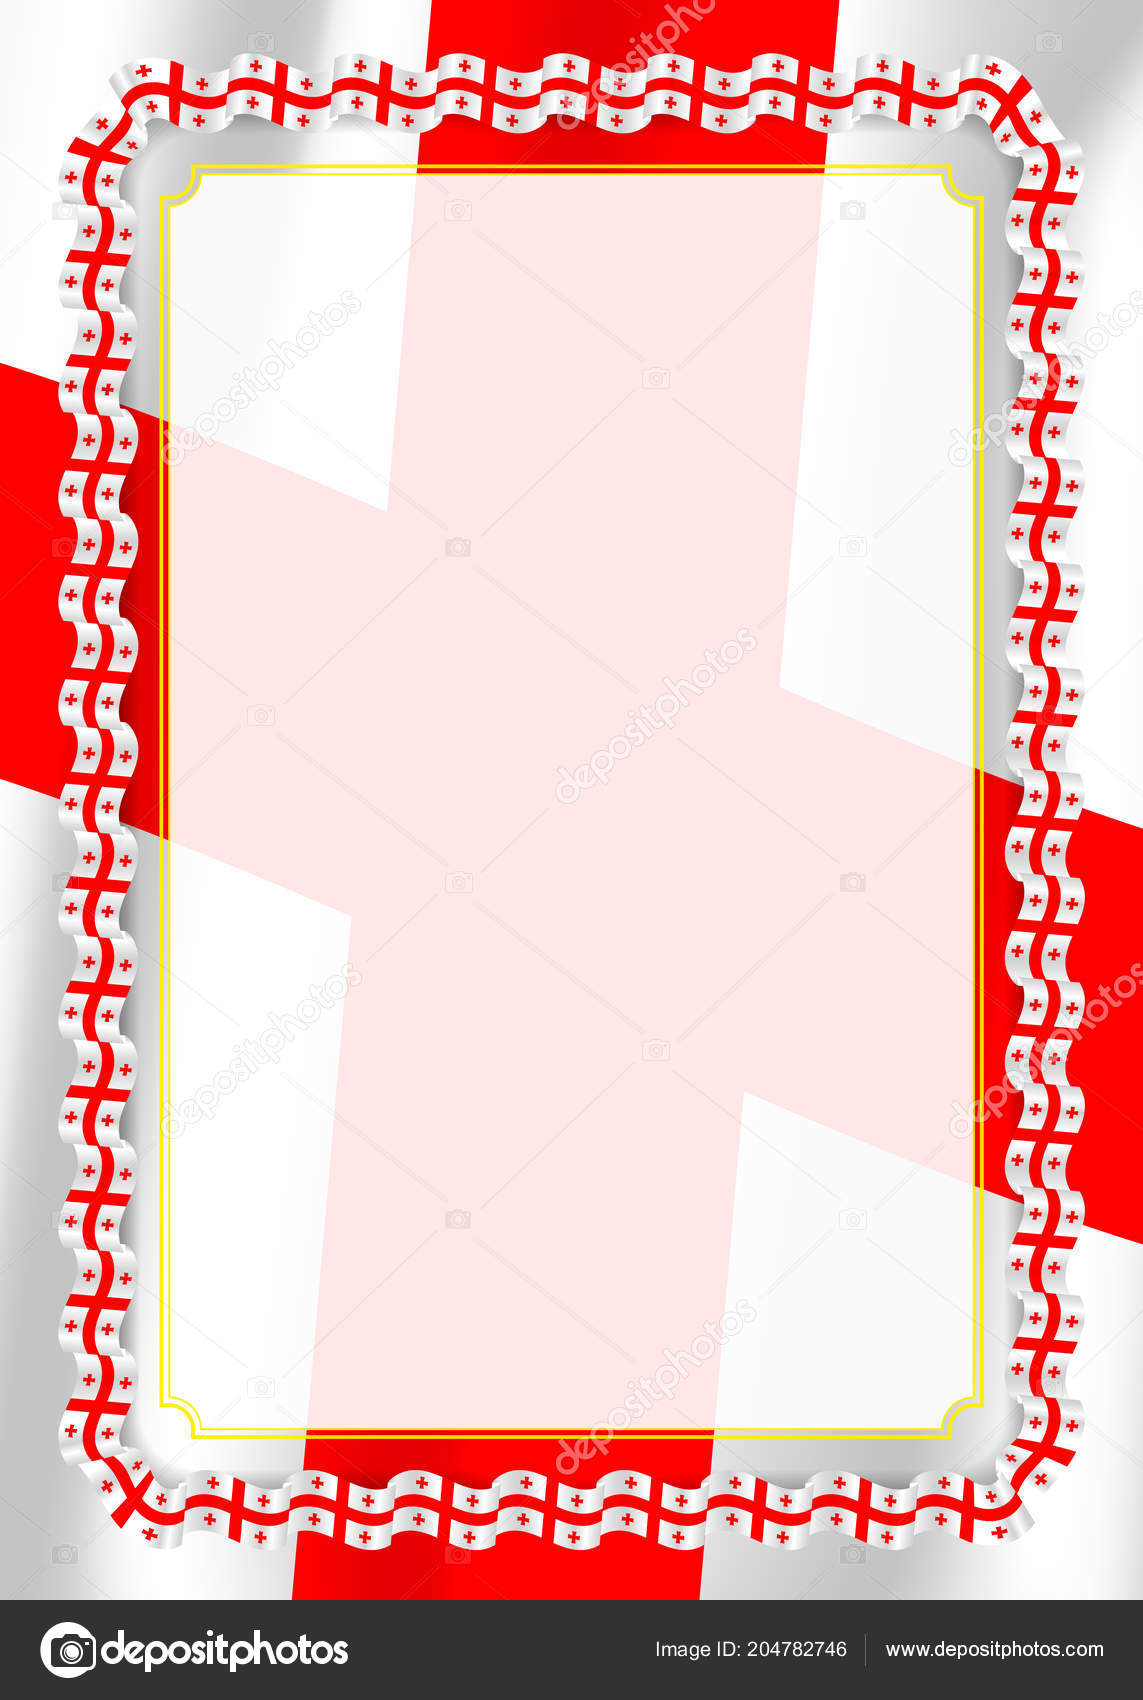 Frame Border Ribbon Georgia Flag Template Elements Your Certificate